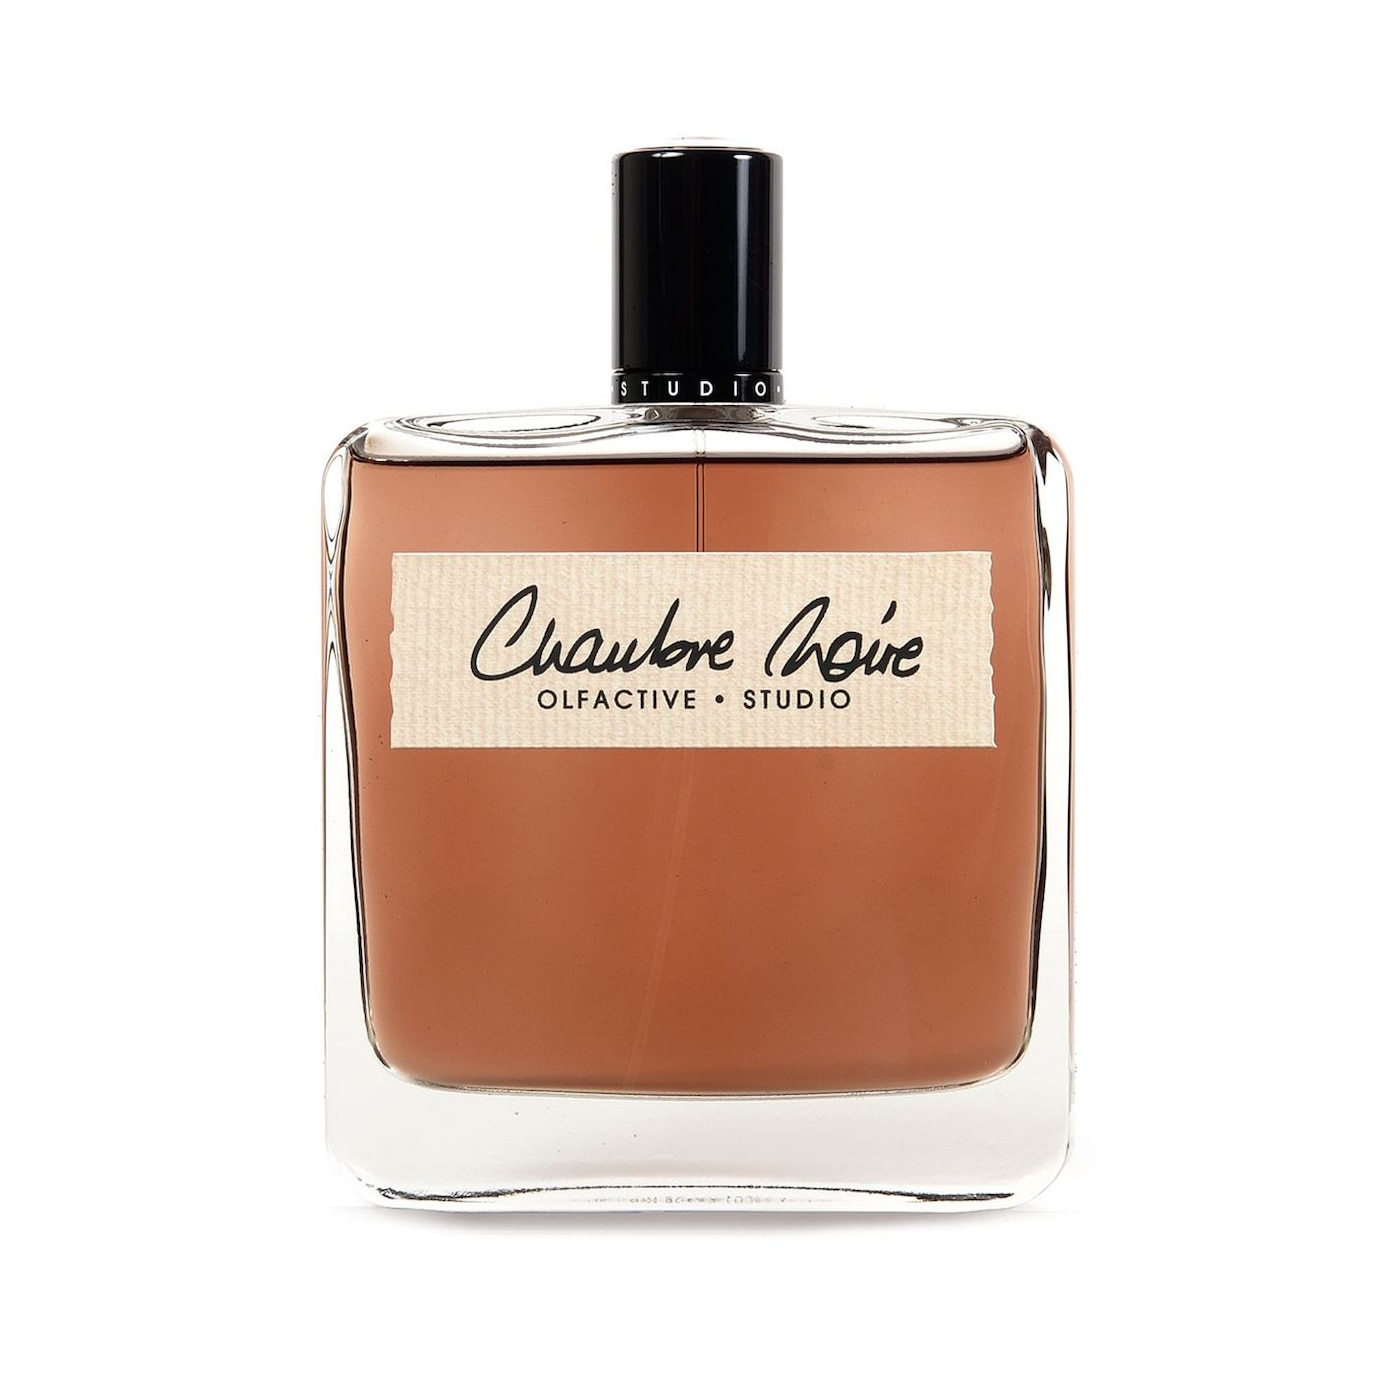 Olfactive Studio Autoportrait 100ml EDP